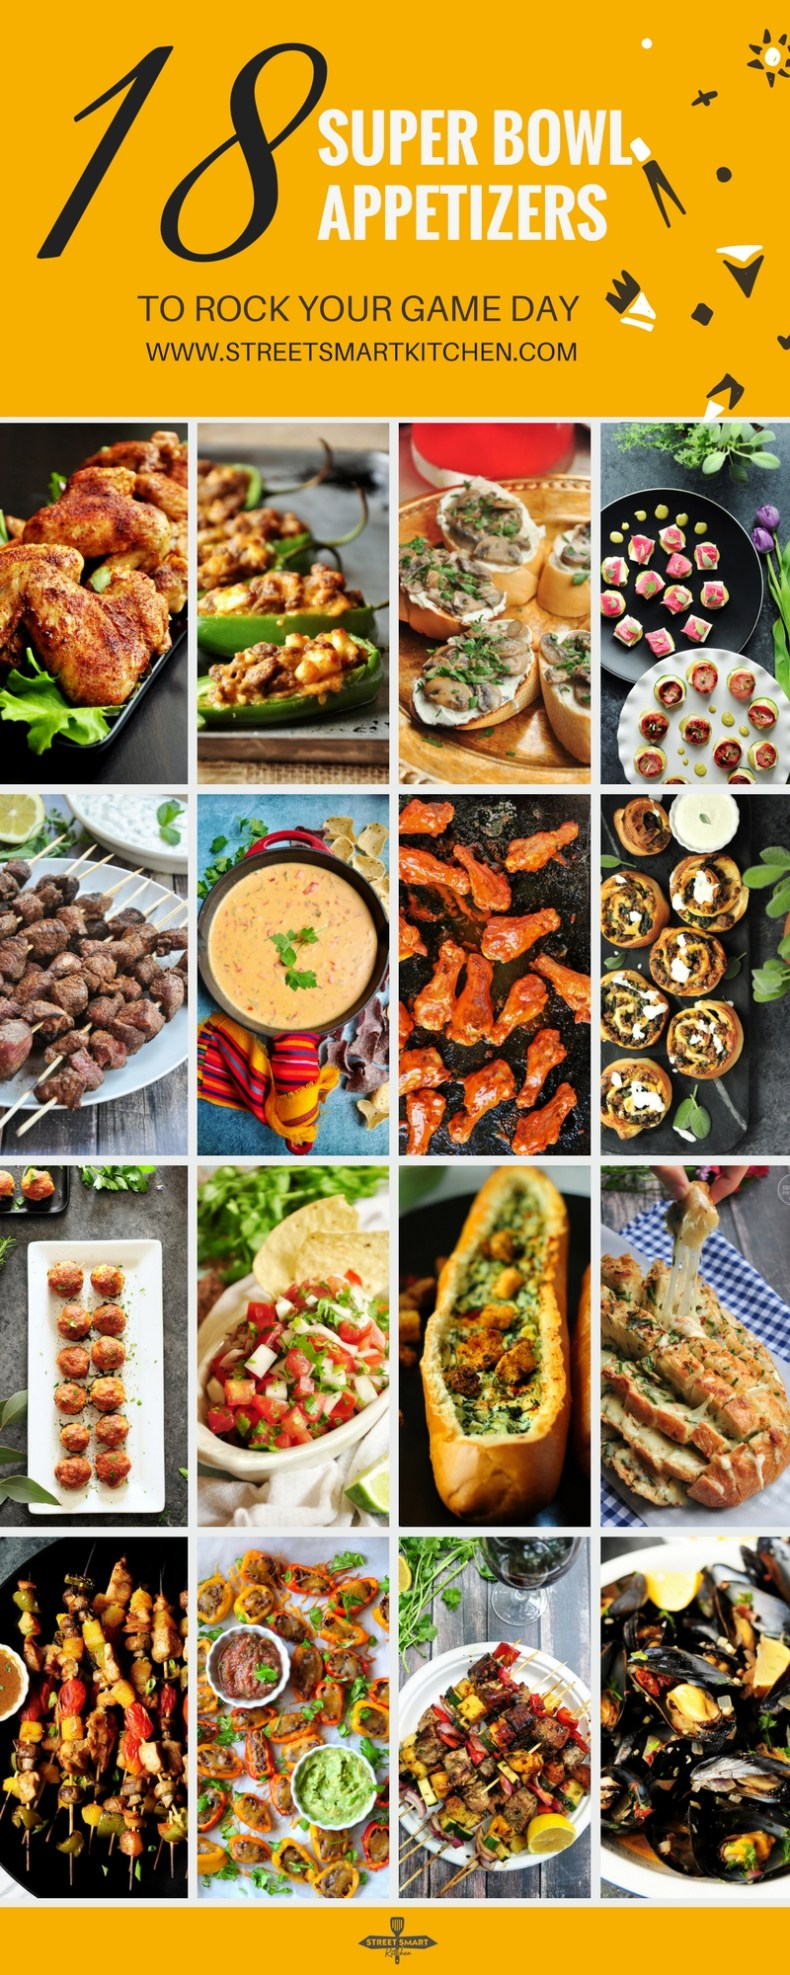 Everyone wants to devour single-bite Super Bowl appetizers while they watch the big game. These awesome recipes will get your guests just as excited about the food as the football.